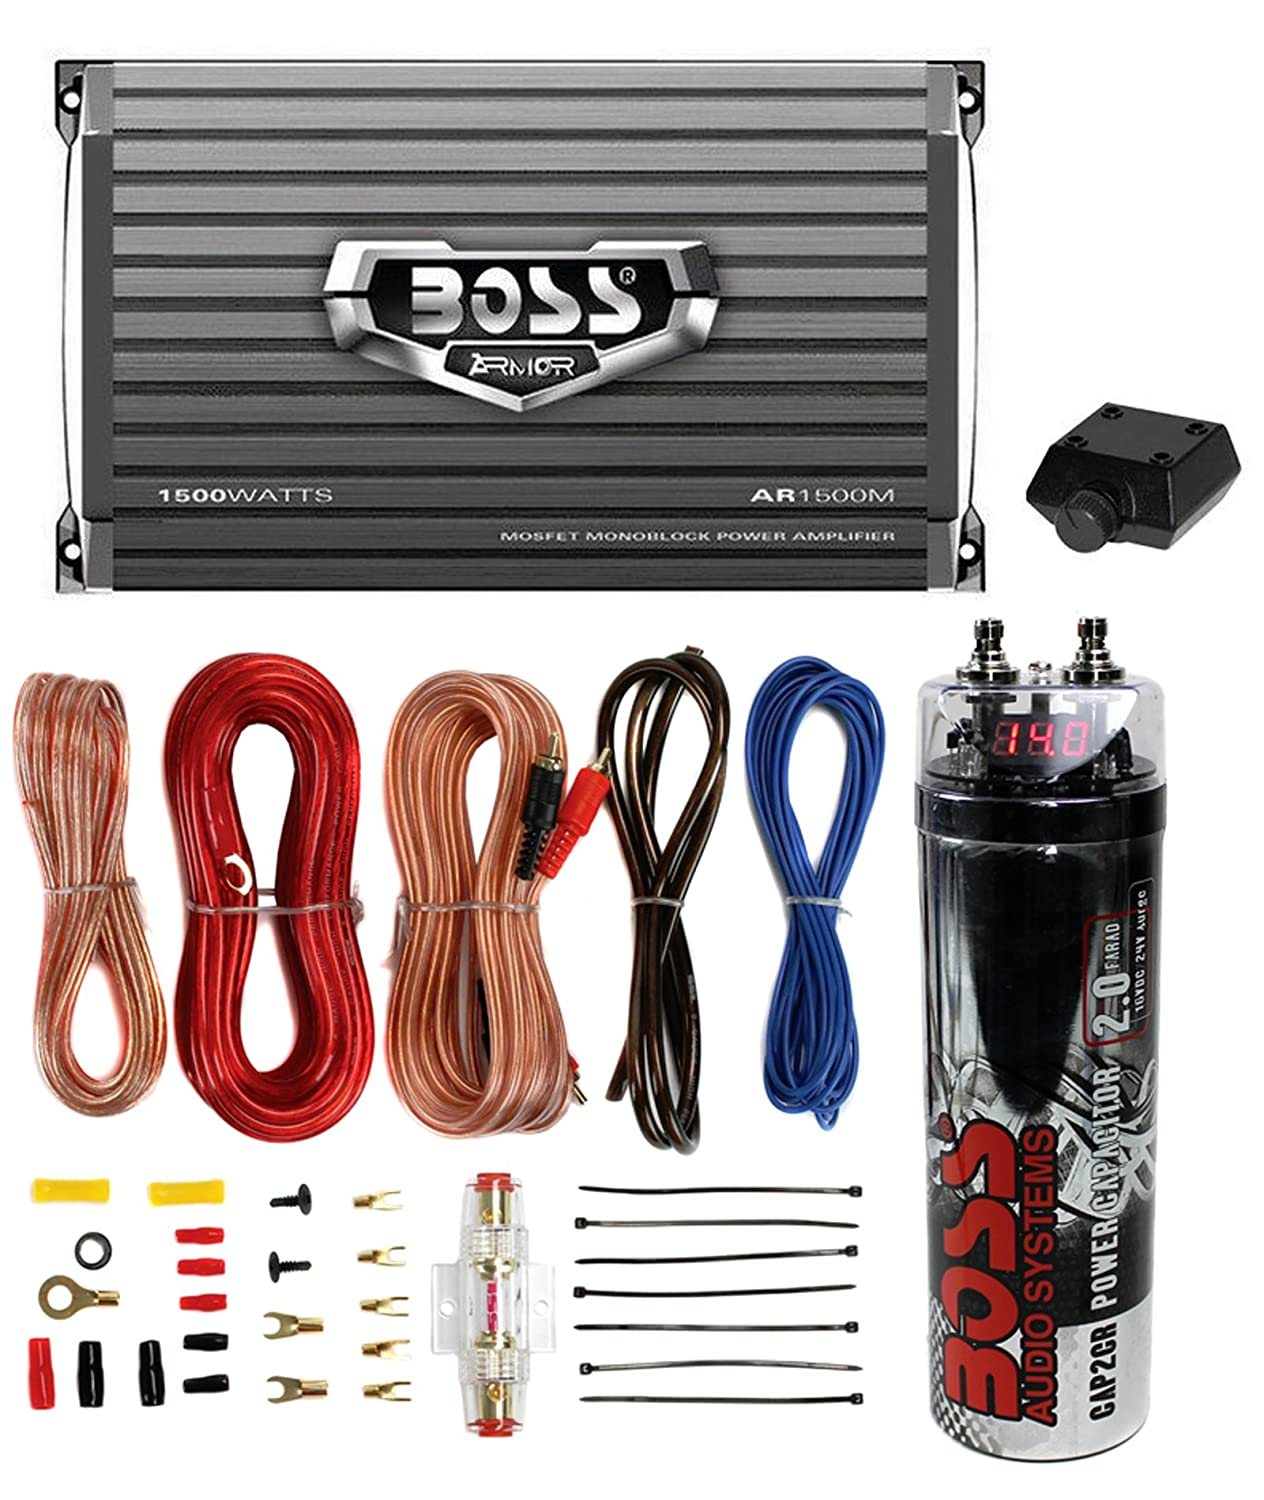 Car Amp Wiring Kit With Capacitor Boss Ar2000m 2000w Mono Amplifier Remote 20 Farad